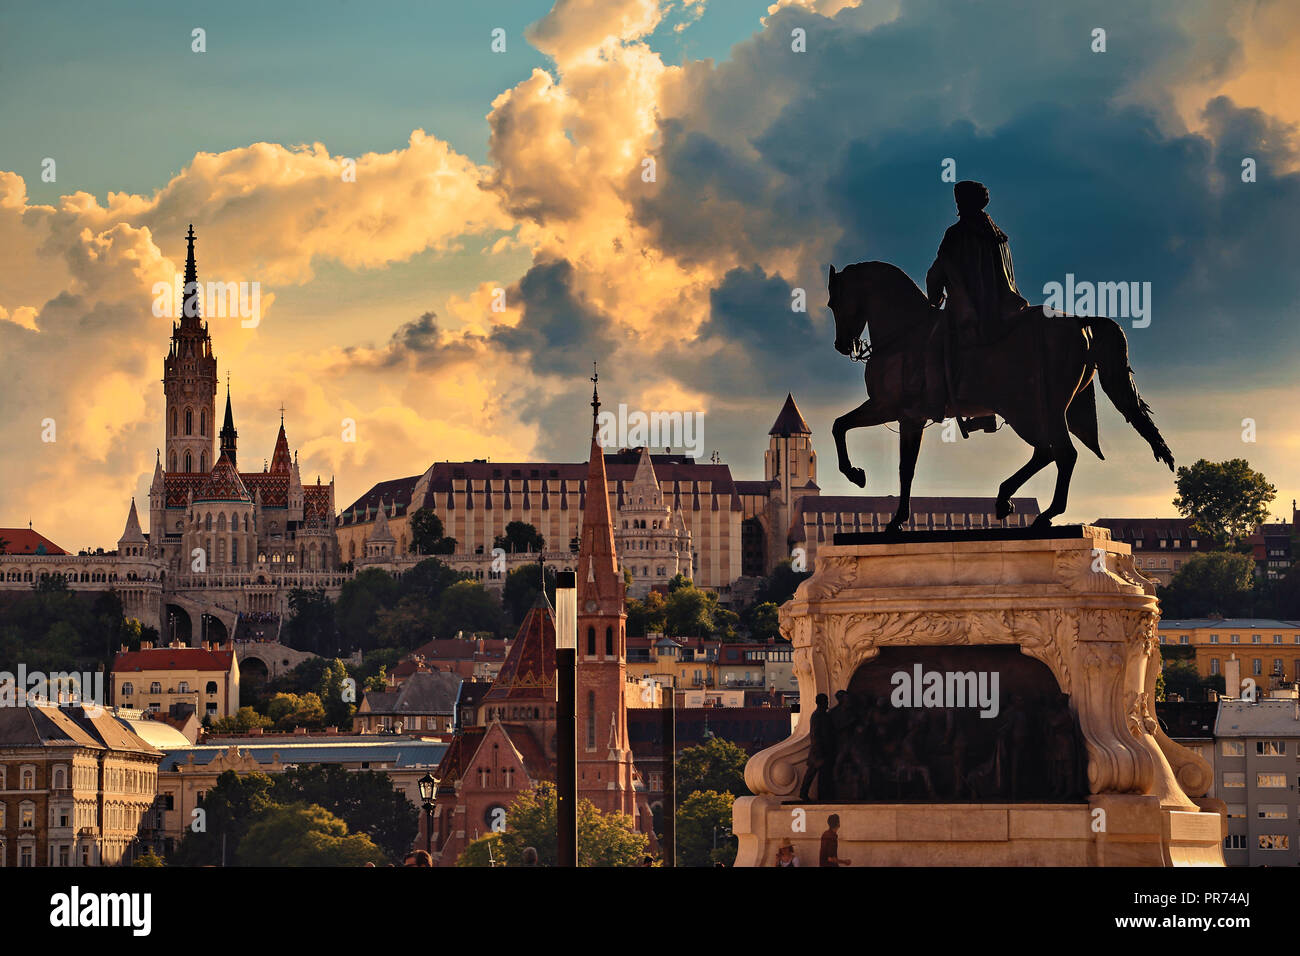 Sunset city skyline of Budapest. Matthias Church, Fisherman's Bastion and other historical buildings on Castle Hill with statue of Gyula Andrassy. Stock Photo